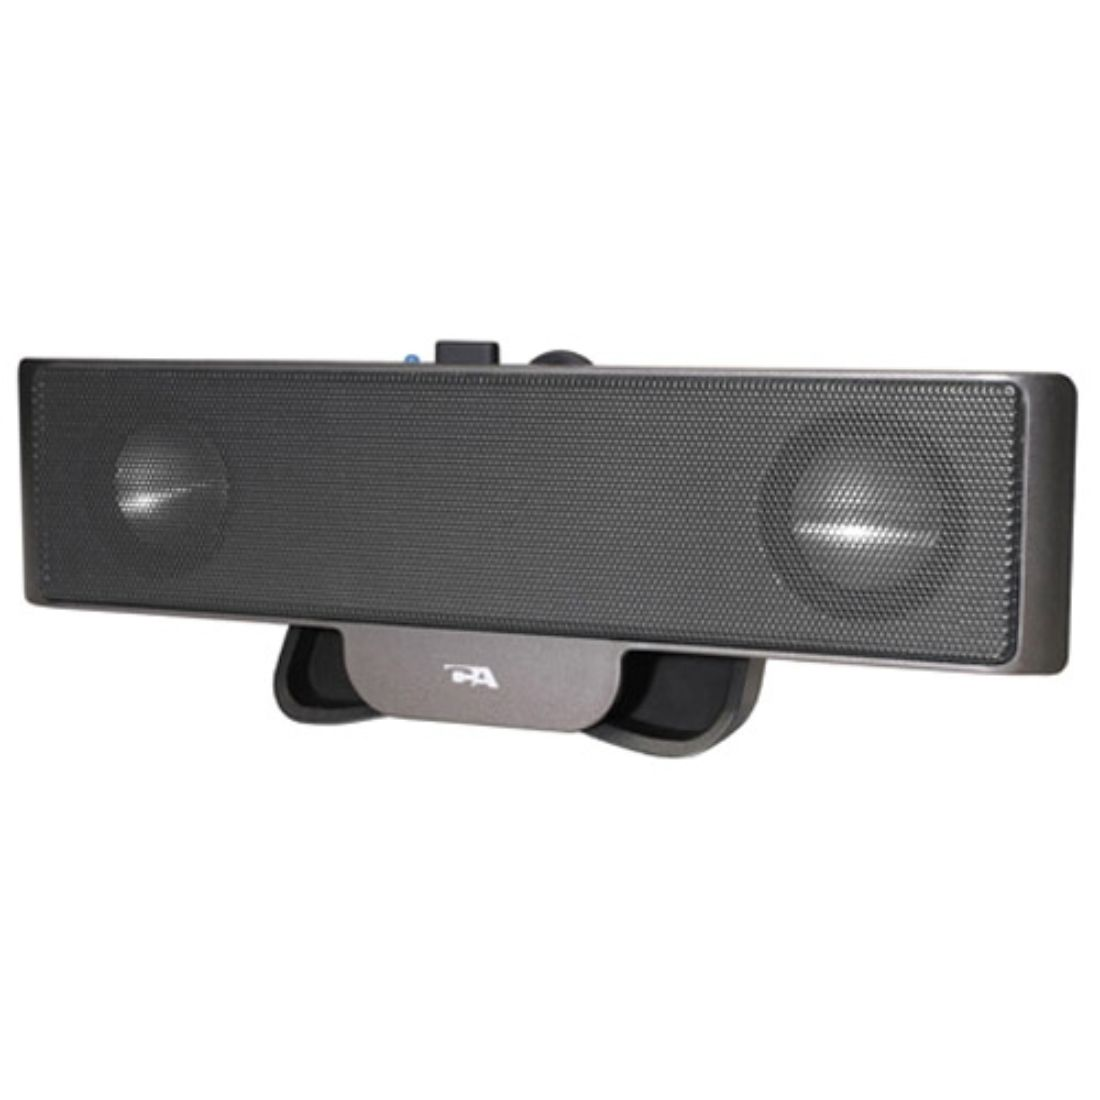 Cyber Acoustics Portable USB Laptop Speaker - Made for Notebook Travel -  Walmart.com - Walmart.com